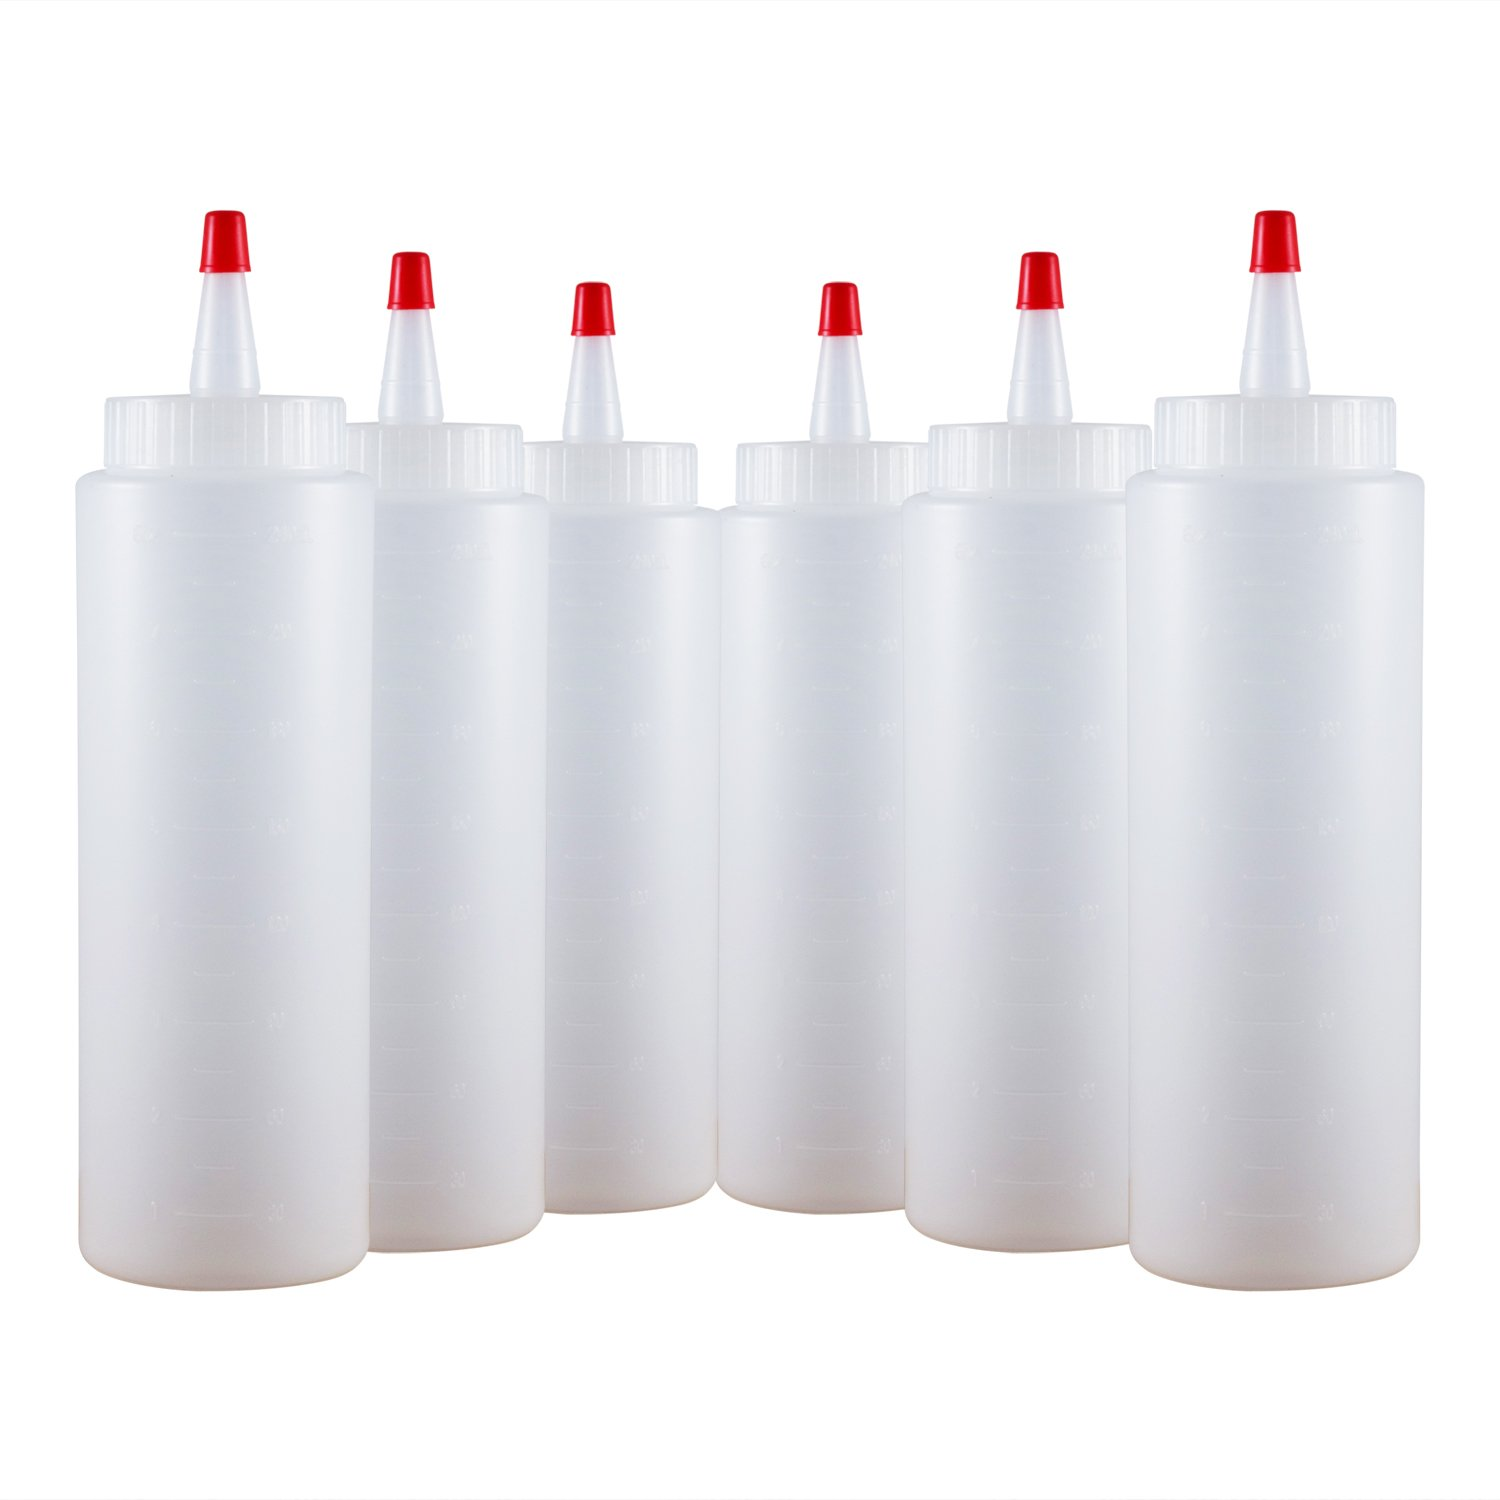 Houseables 6-Pk Plastic Squirt Bottle